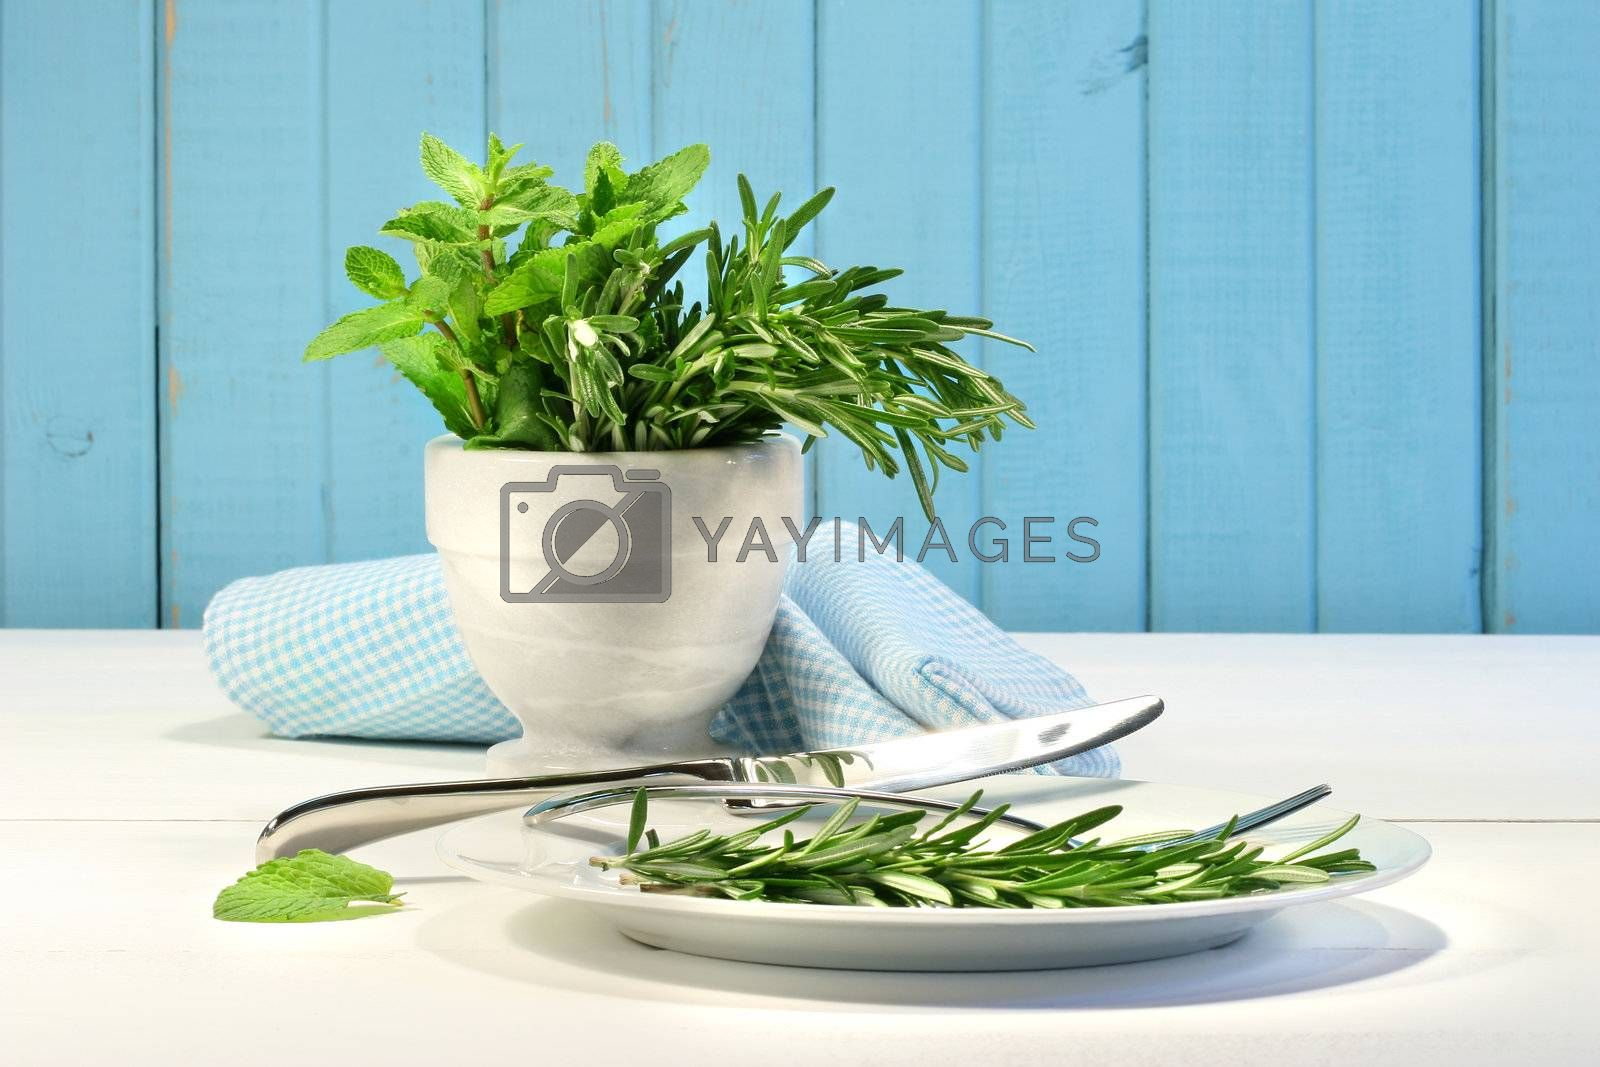 Fresh herbs on the table with plate and utensils